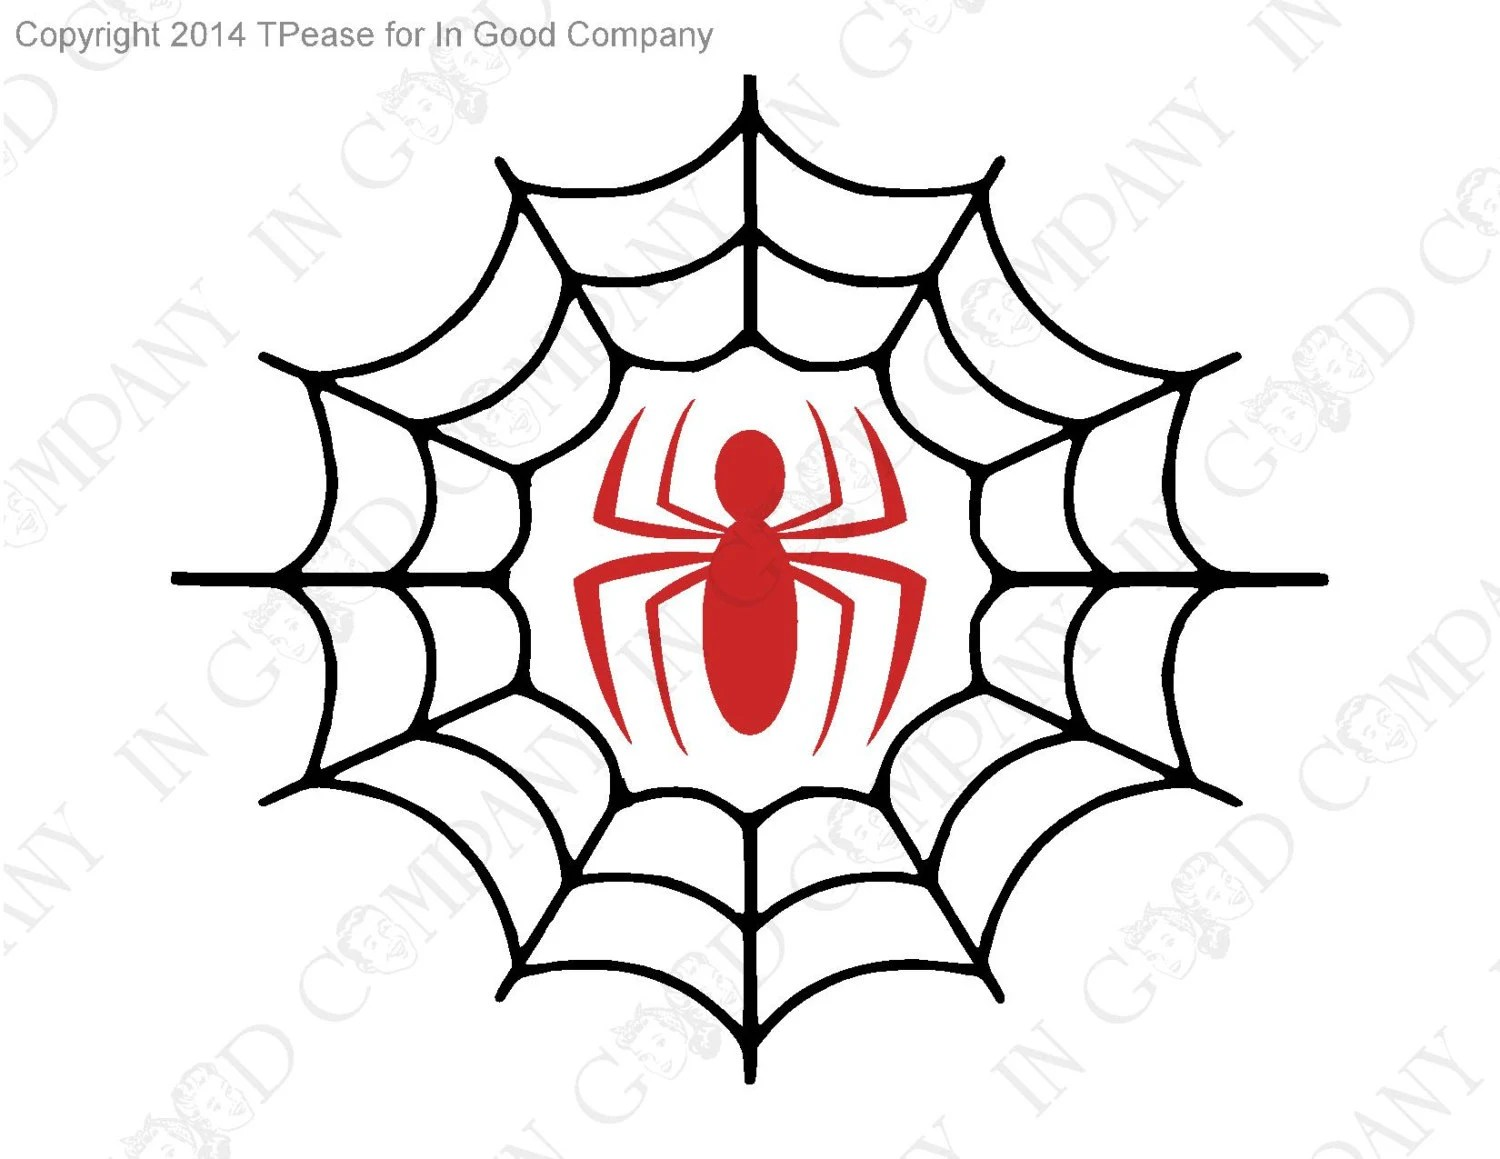 Retro Spiderman Wall Decal 11 Wide 9 5 High